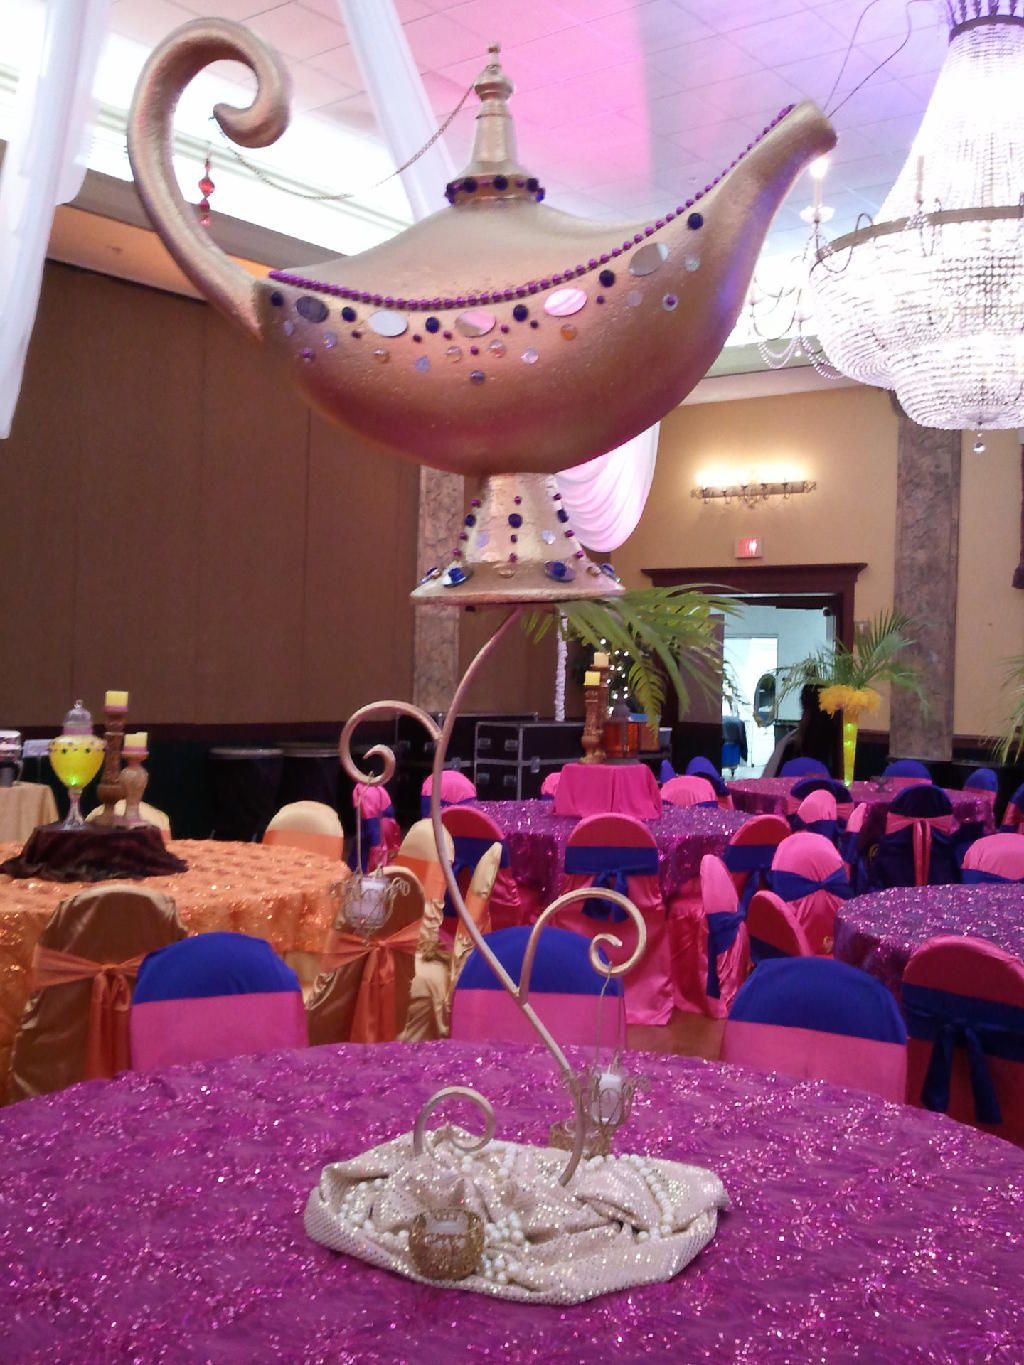 680848 0daaa27d5106e2e7c24d4a52dc853a52 1024 1024x1365 Pixels Aladdin PartyAladdin WeddingDisney Themed WeddingsMoroccan